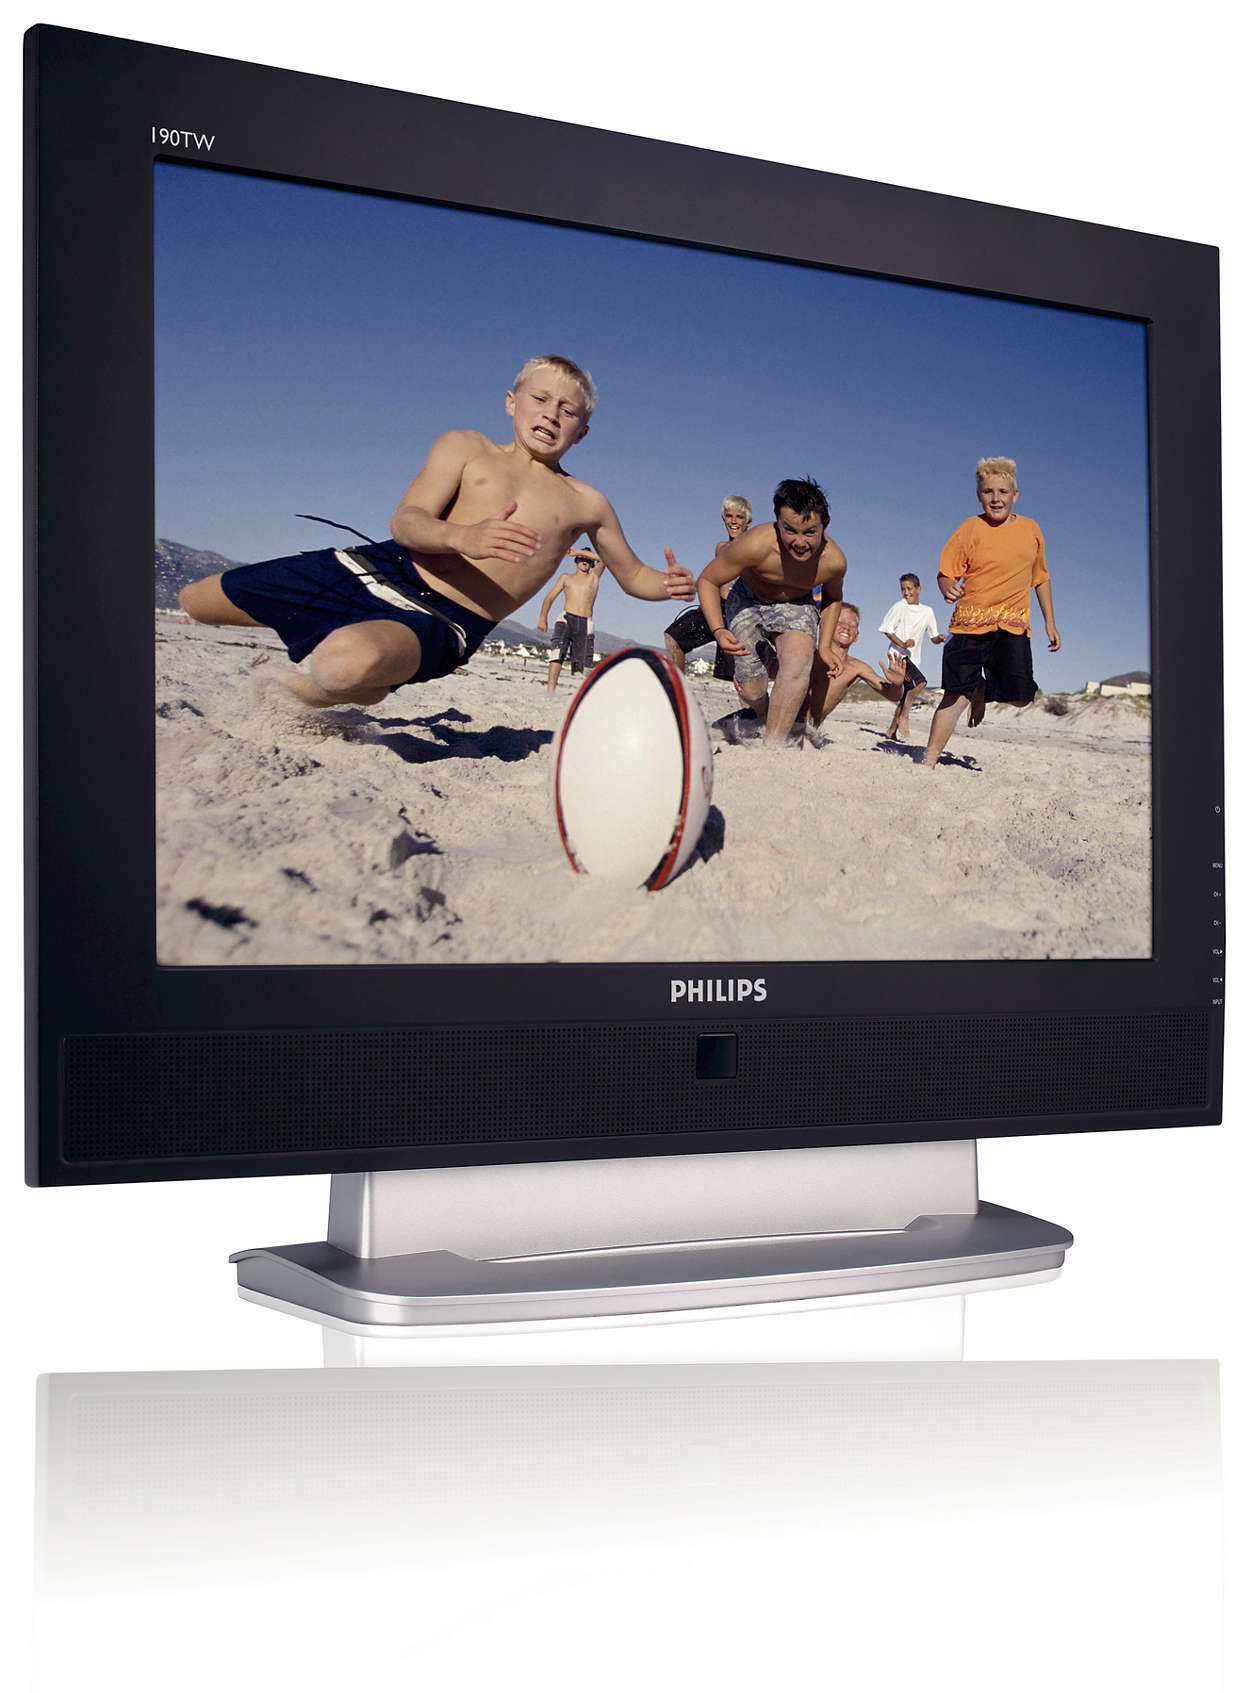 Full-feature LCD monitor and TV combo